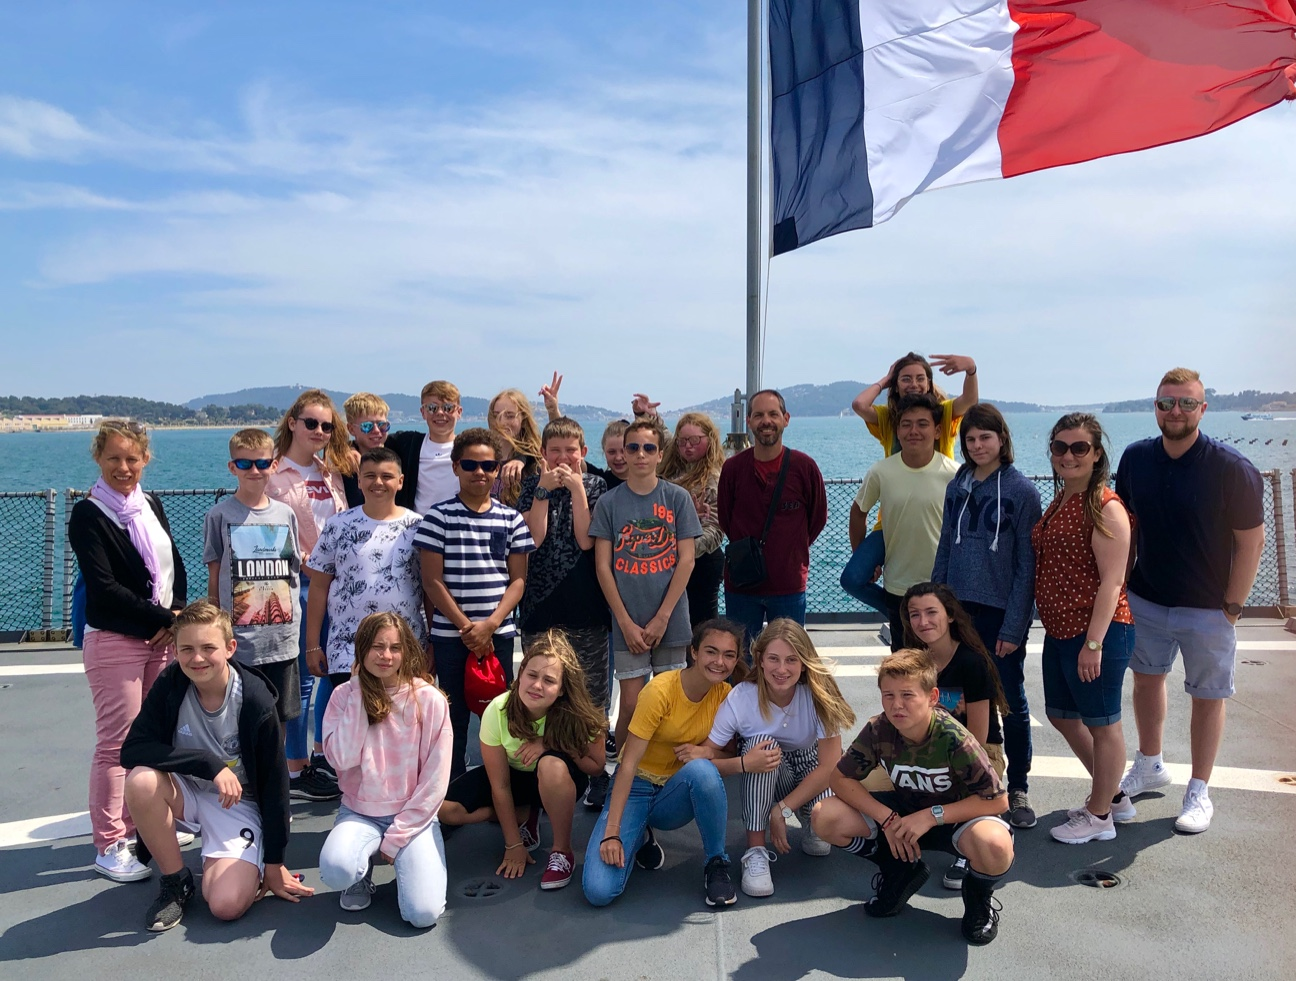 Shirebrook Academy students spent a week living with families in Toulon, in the South of France as part of a foreign exchange visit. Penguin PR: public relations, ,media and communications